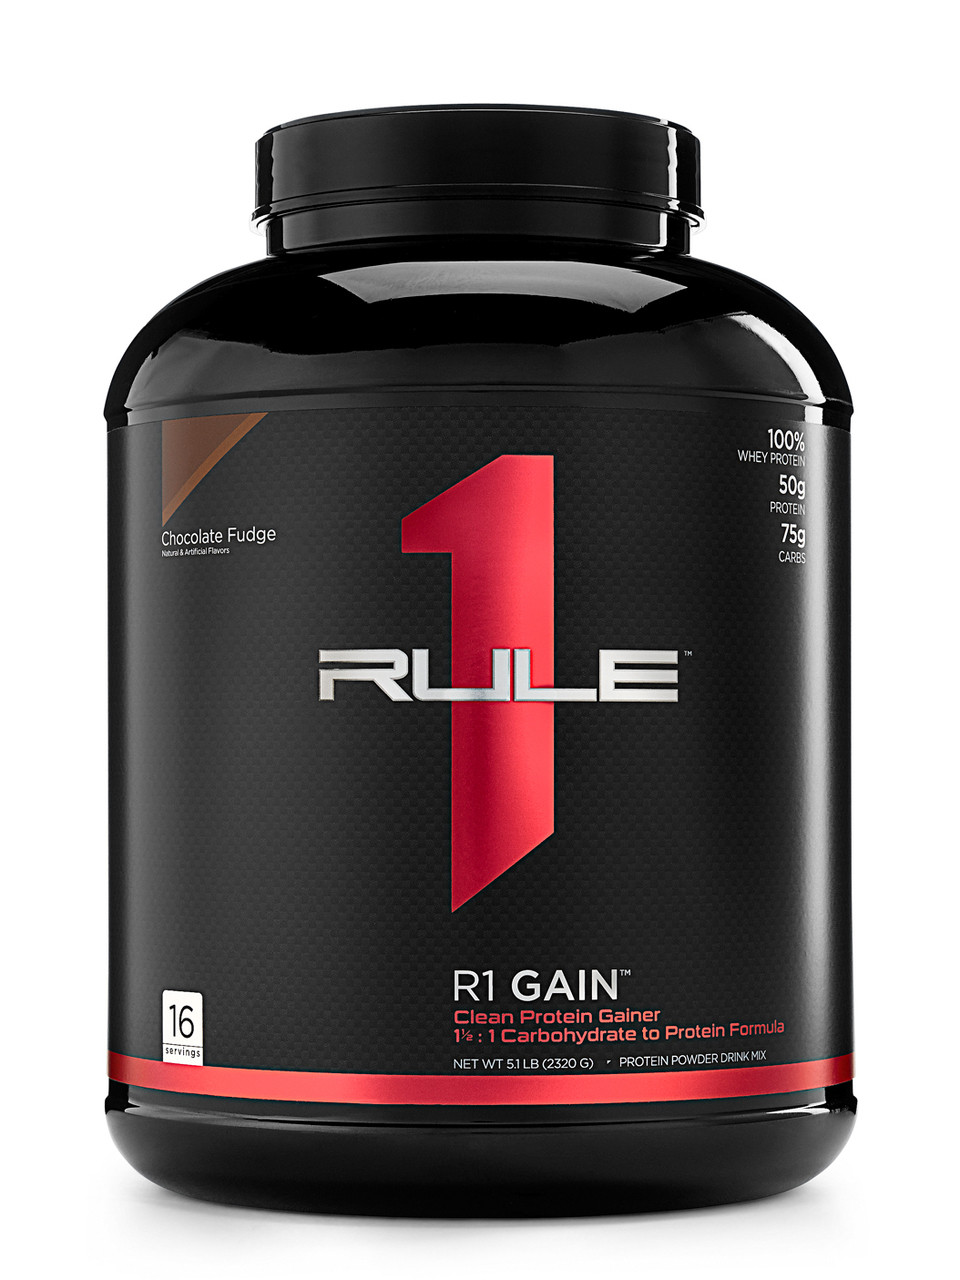 Gainer or protein 23